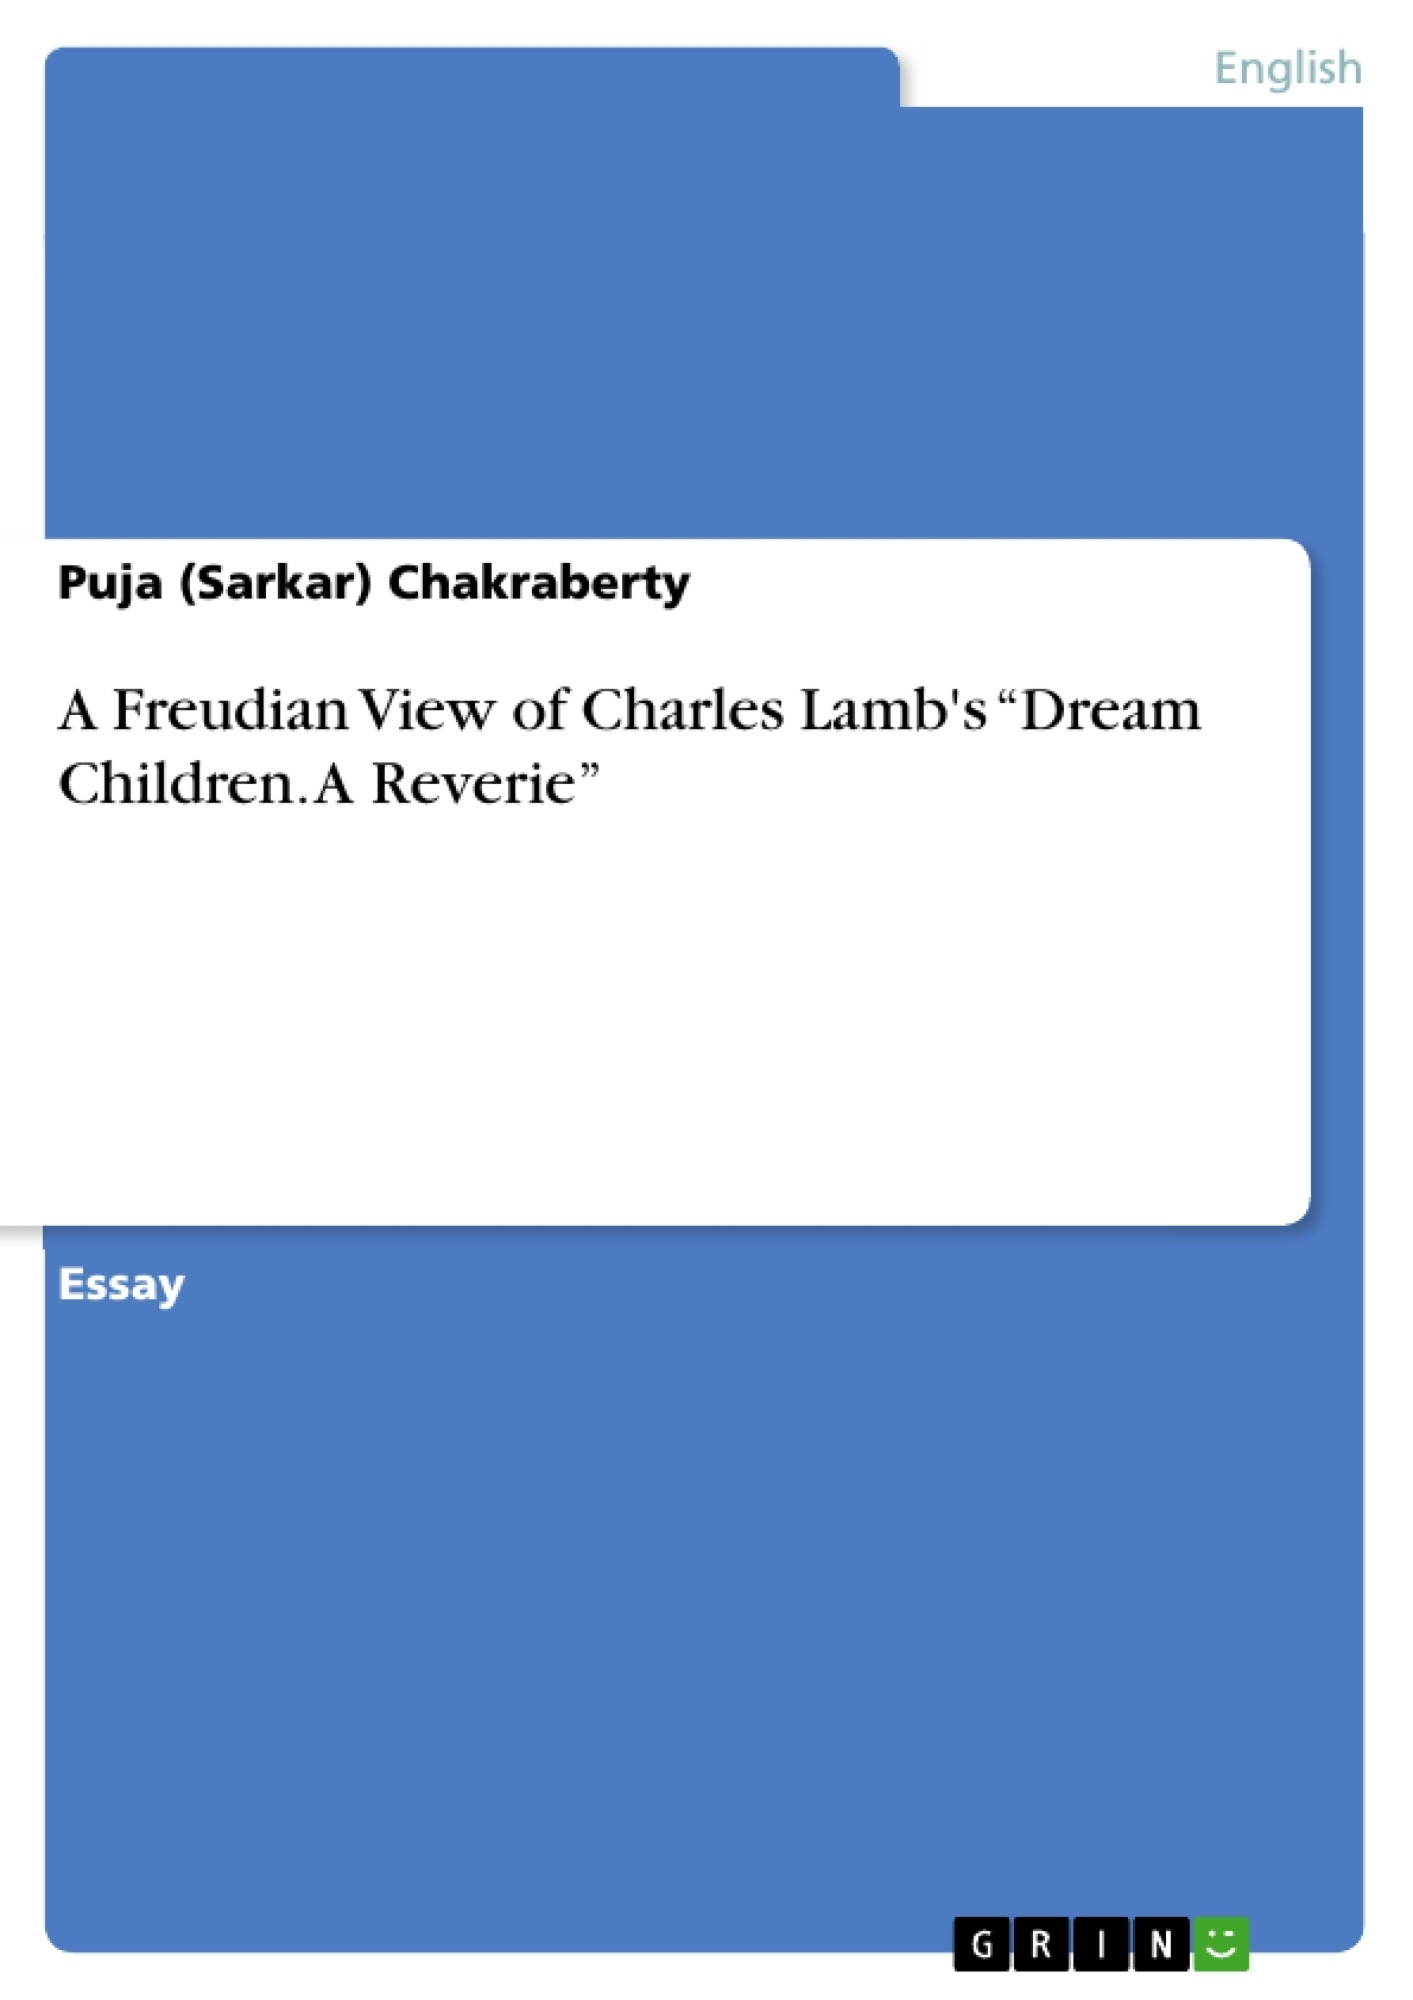 charles lamb my relations analysis